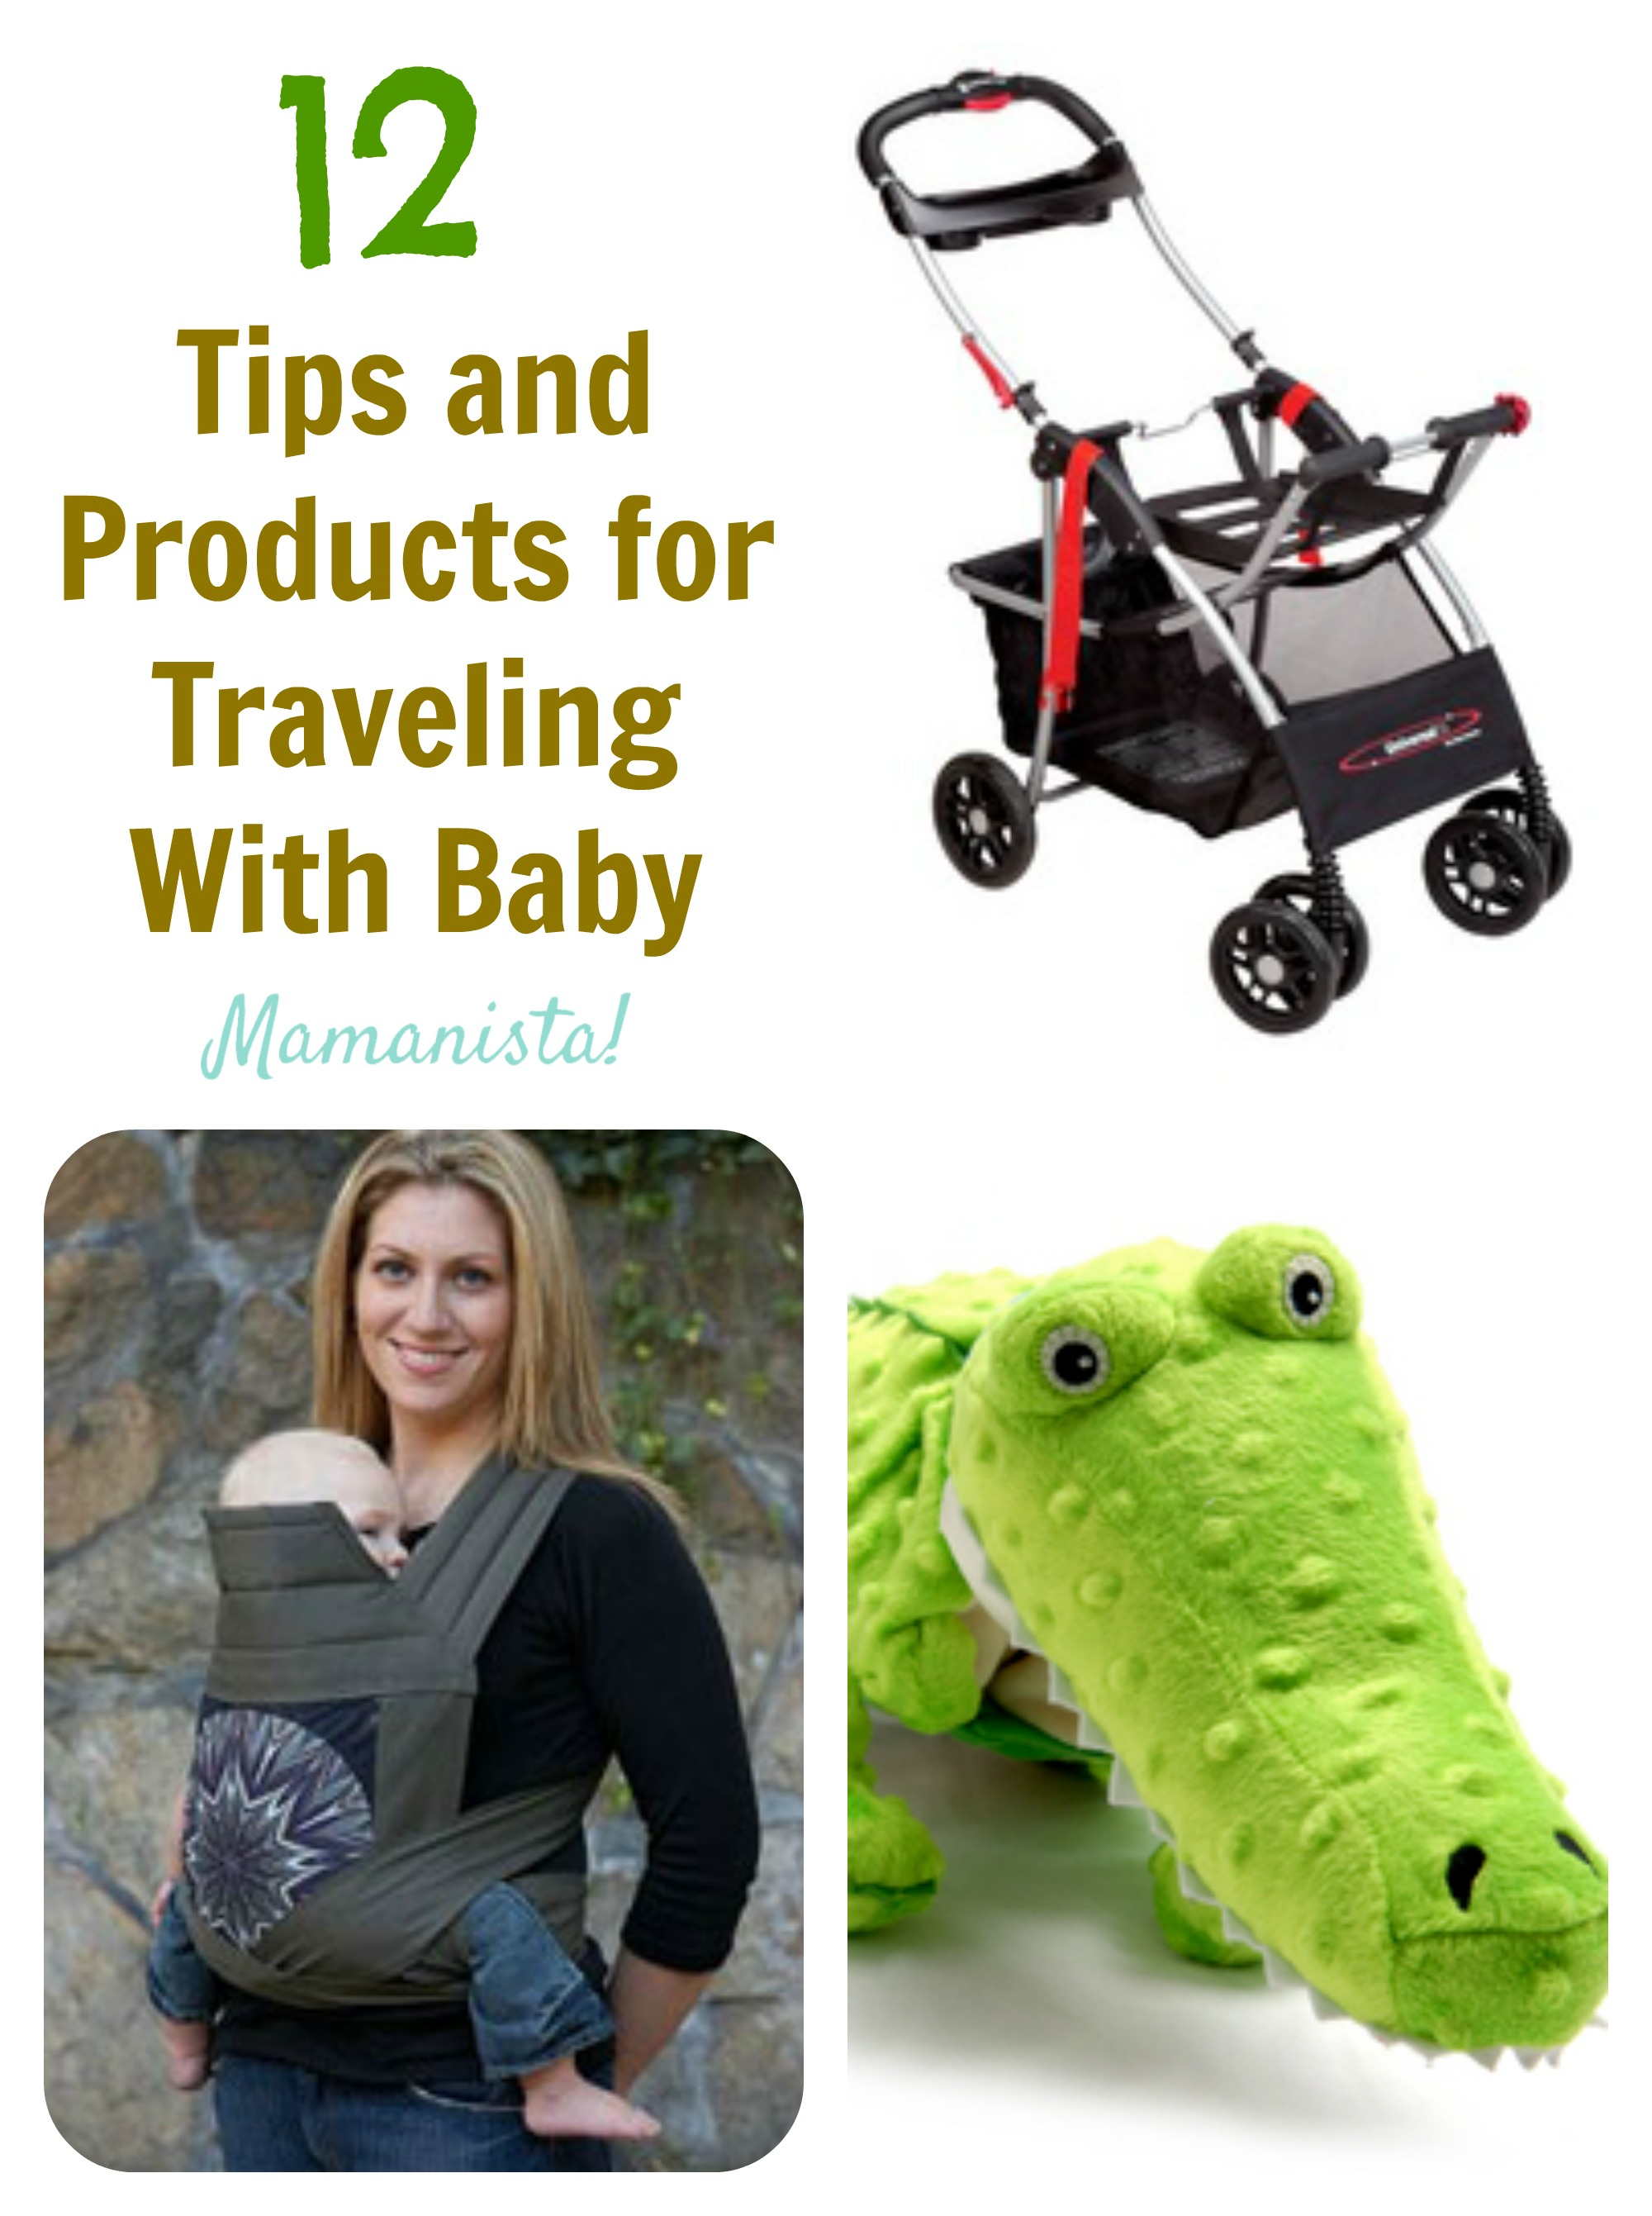 Tips and Products for Traveling With Baby